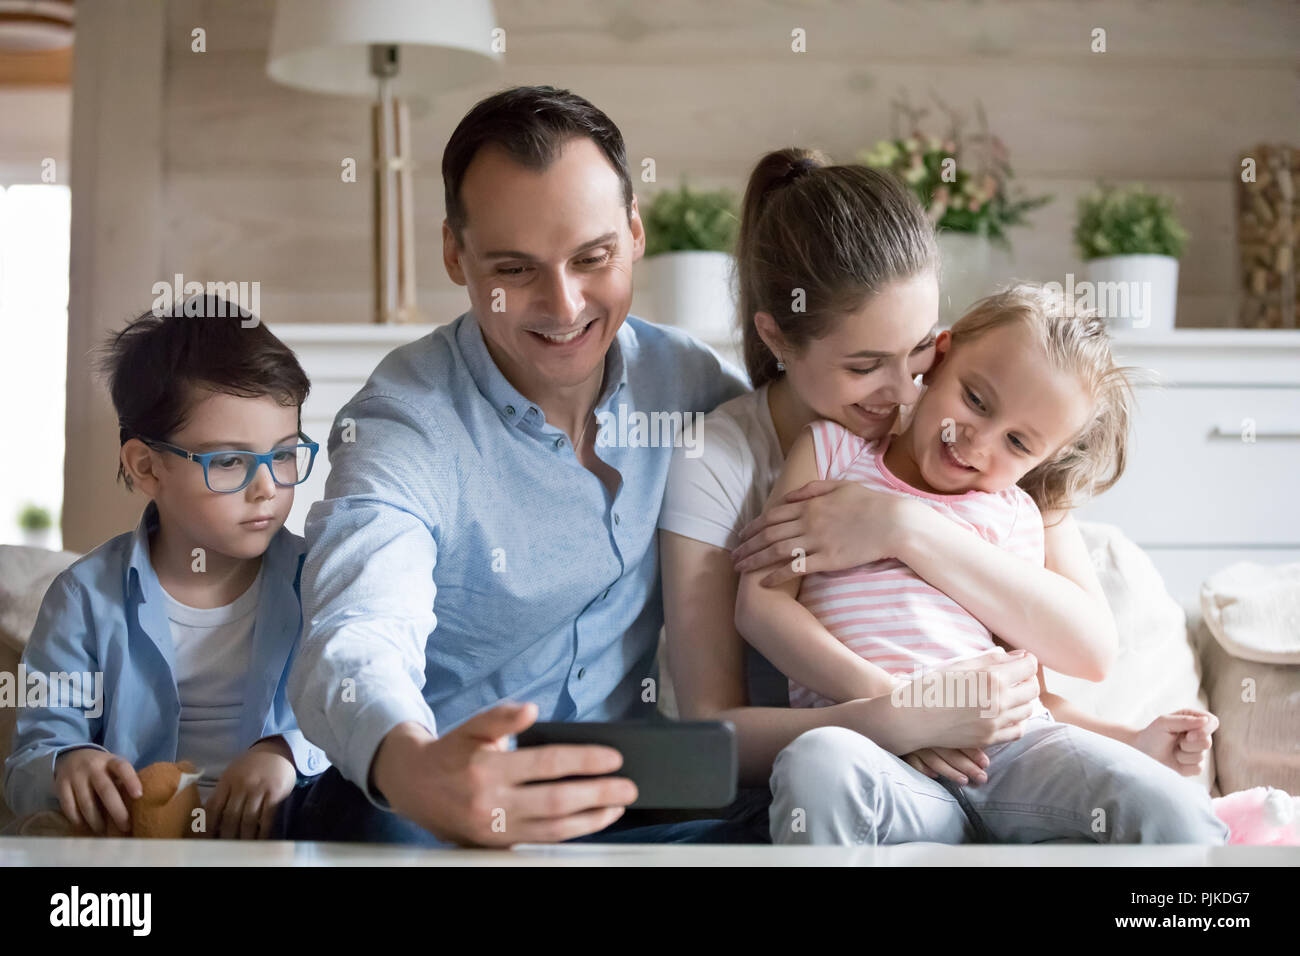 Smiling father making selfie of happy family of four - Stock Image